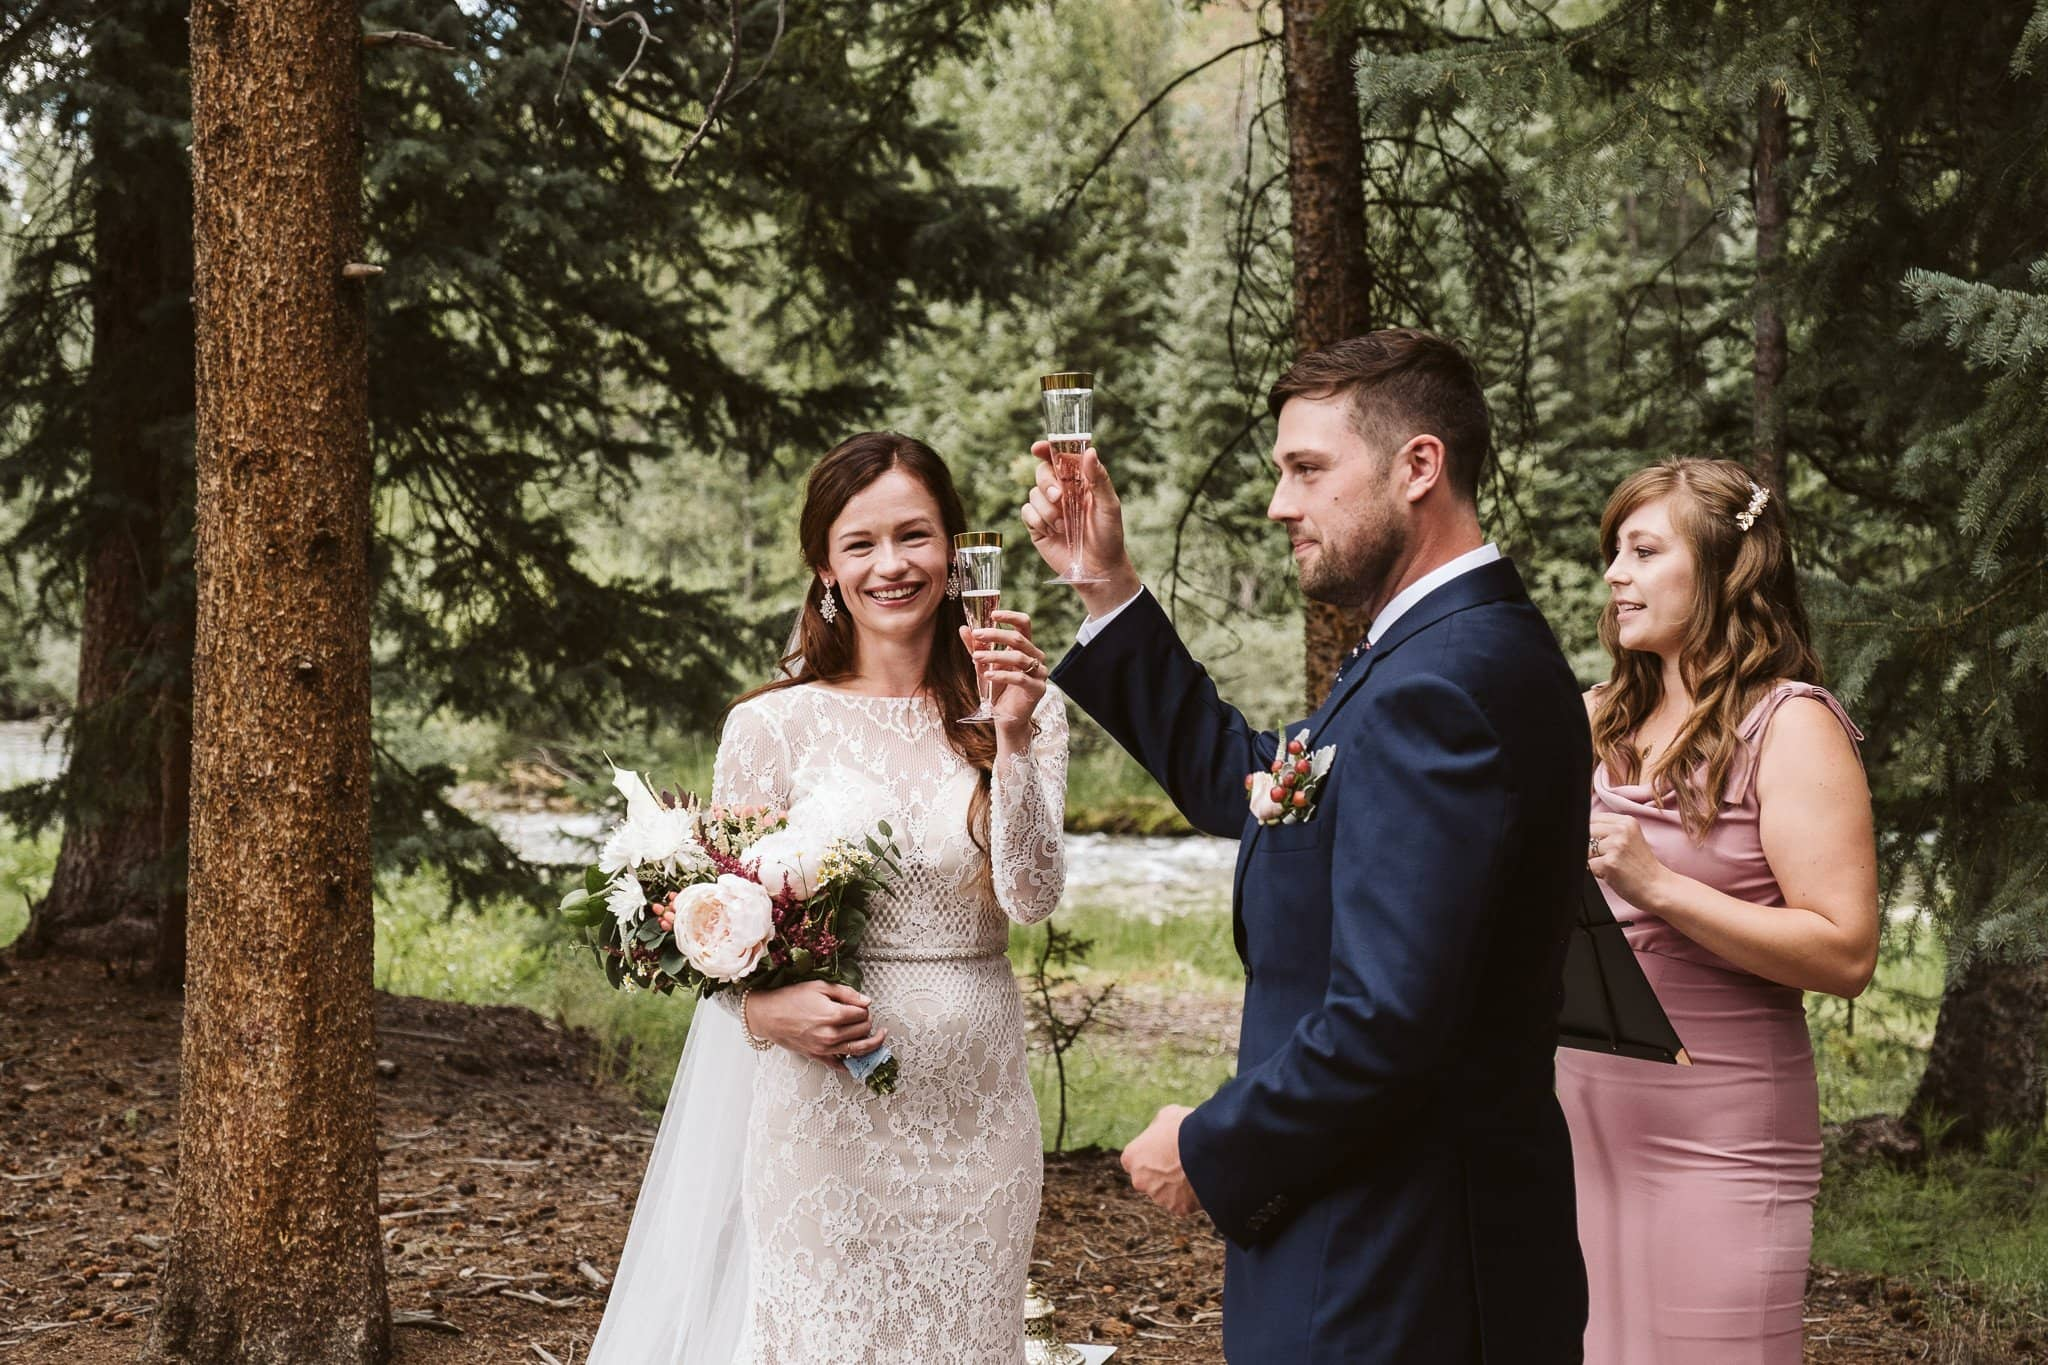 Bride and groom share a champagne toast at their wedding ceremony in the woods